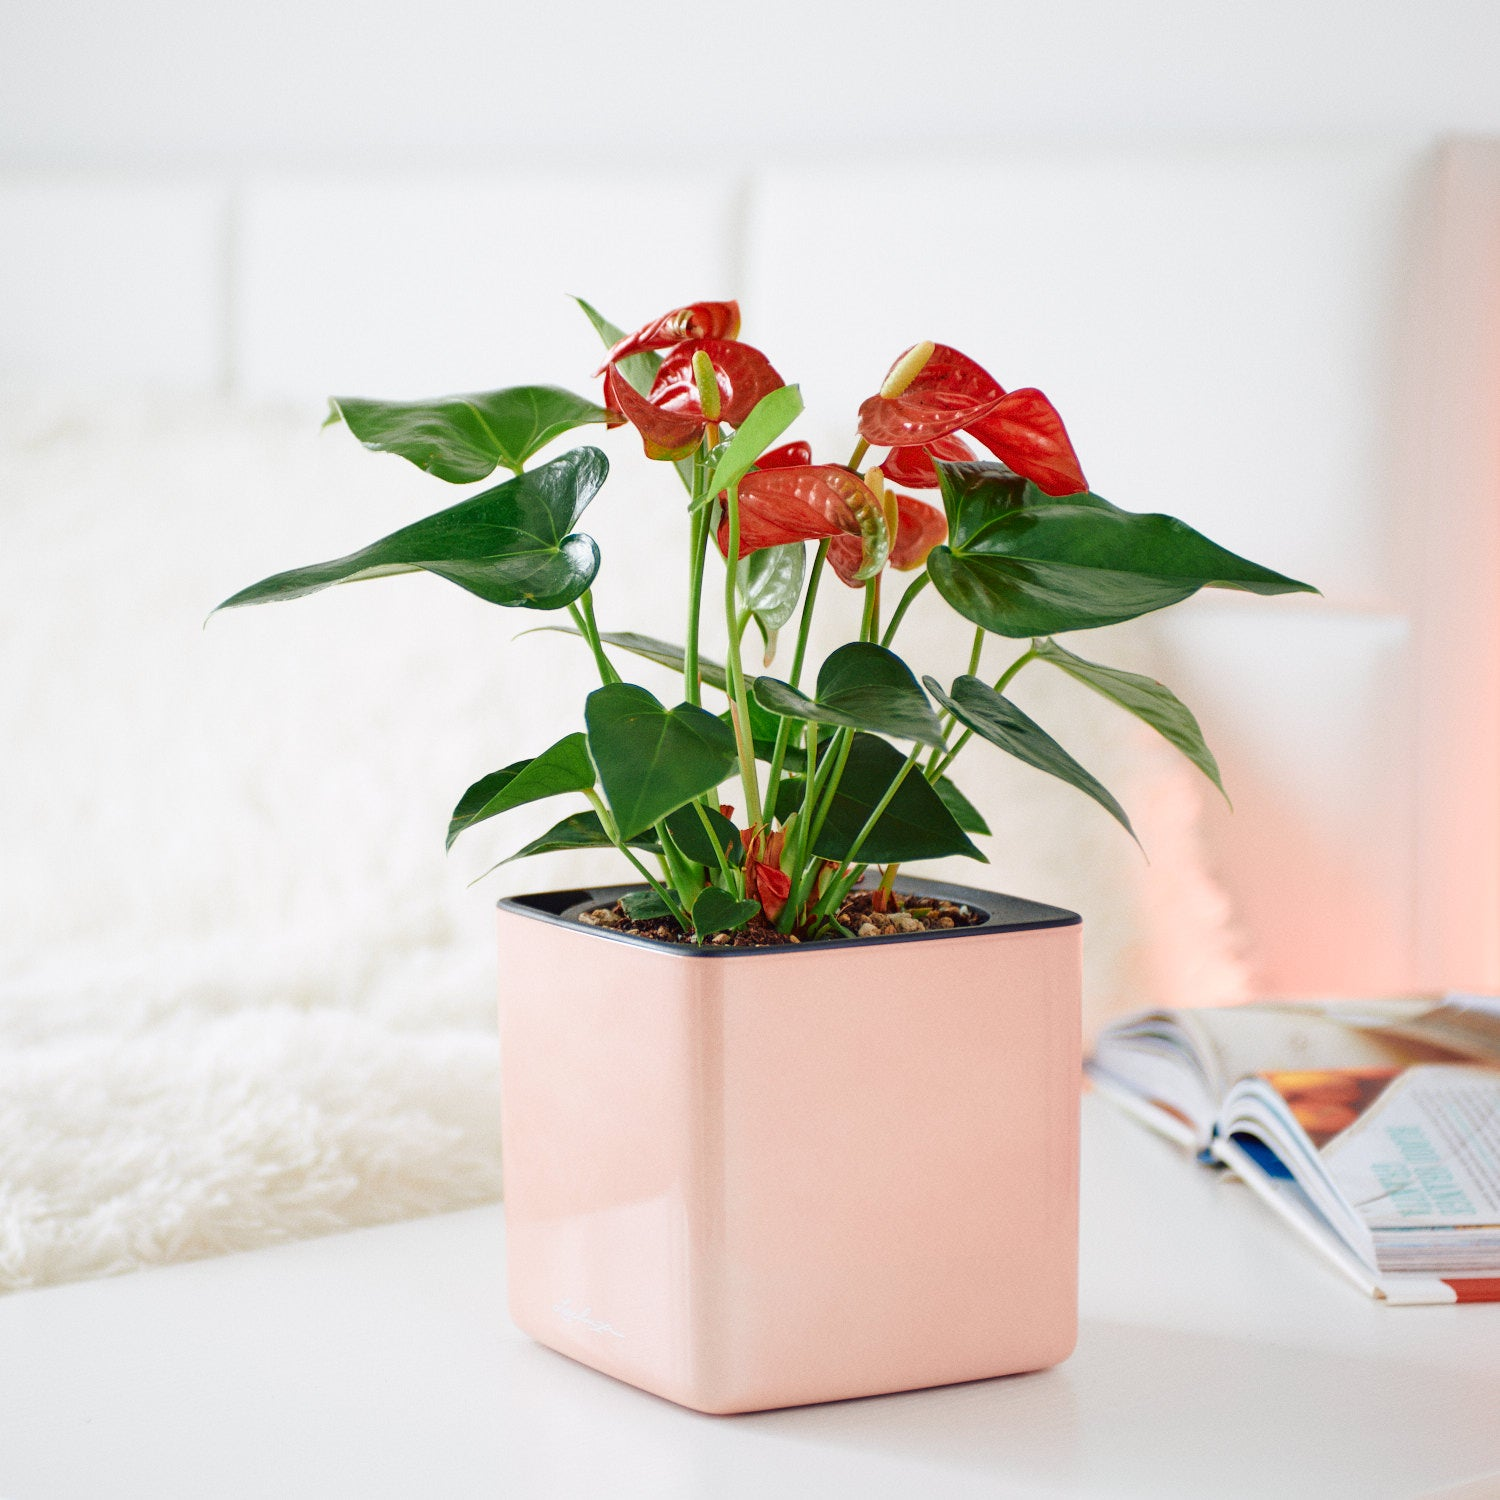 Anthurium Plant In Lechuza Cube 14 Glossy Cashmere Planter | My City Plants